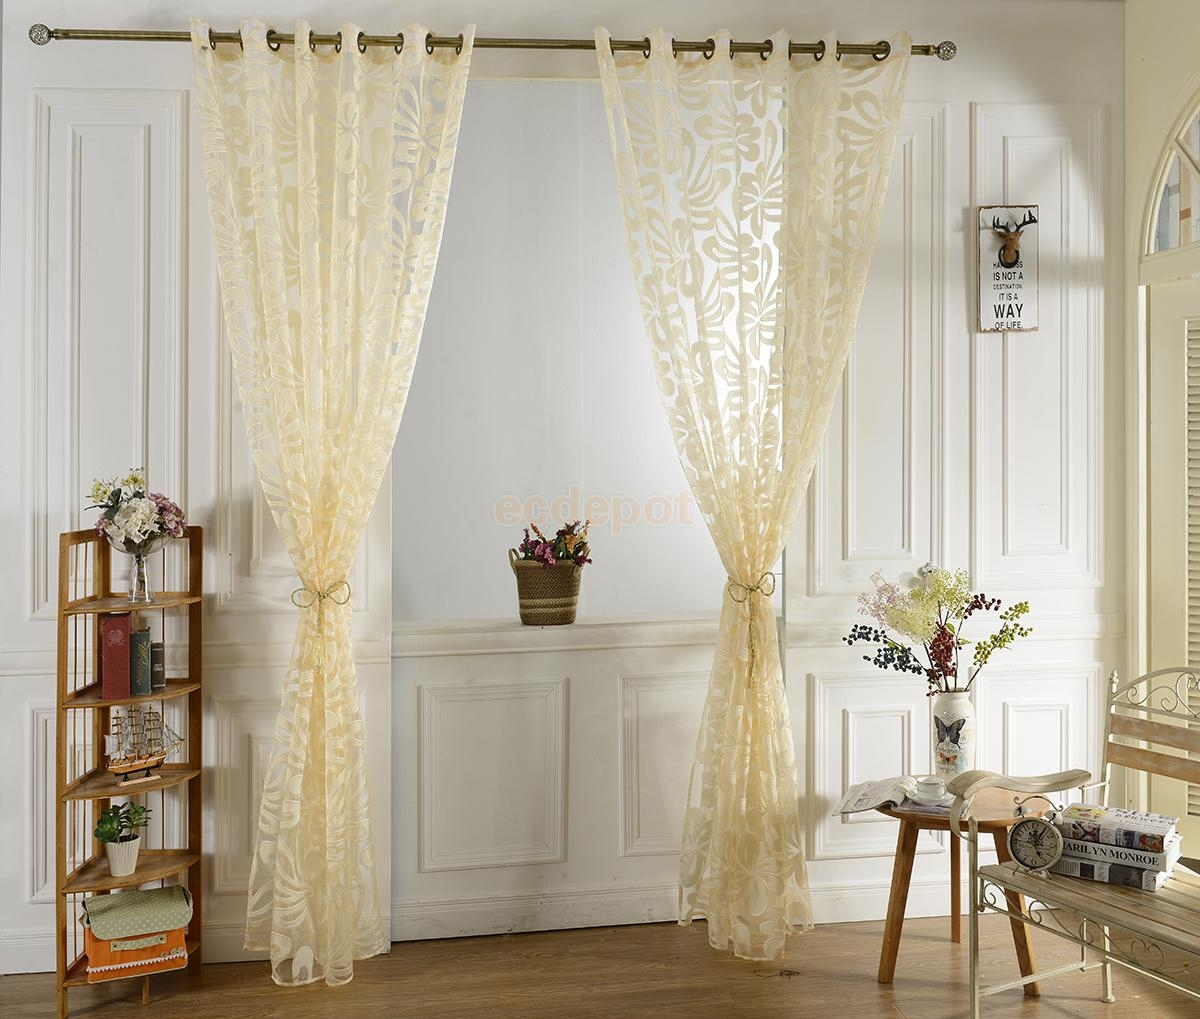 Online Get Cheap Jacquard Eyelet Curtains Aliexpress Regarding Sheer Eyelet Curtains (Image 9 of 15)